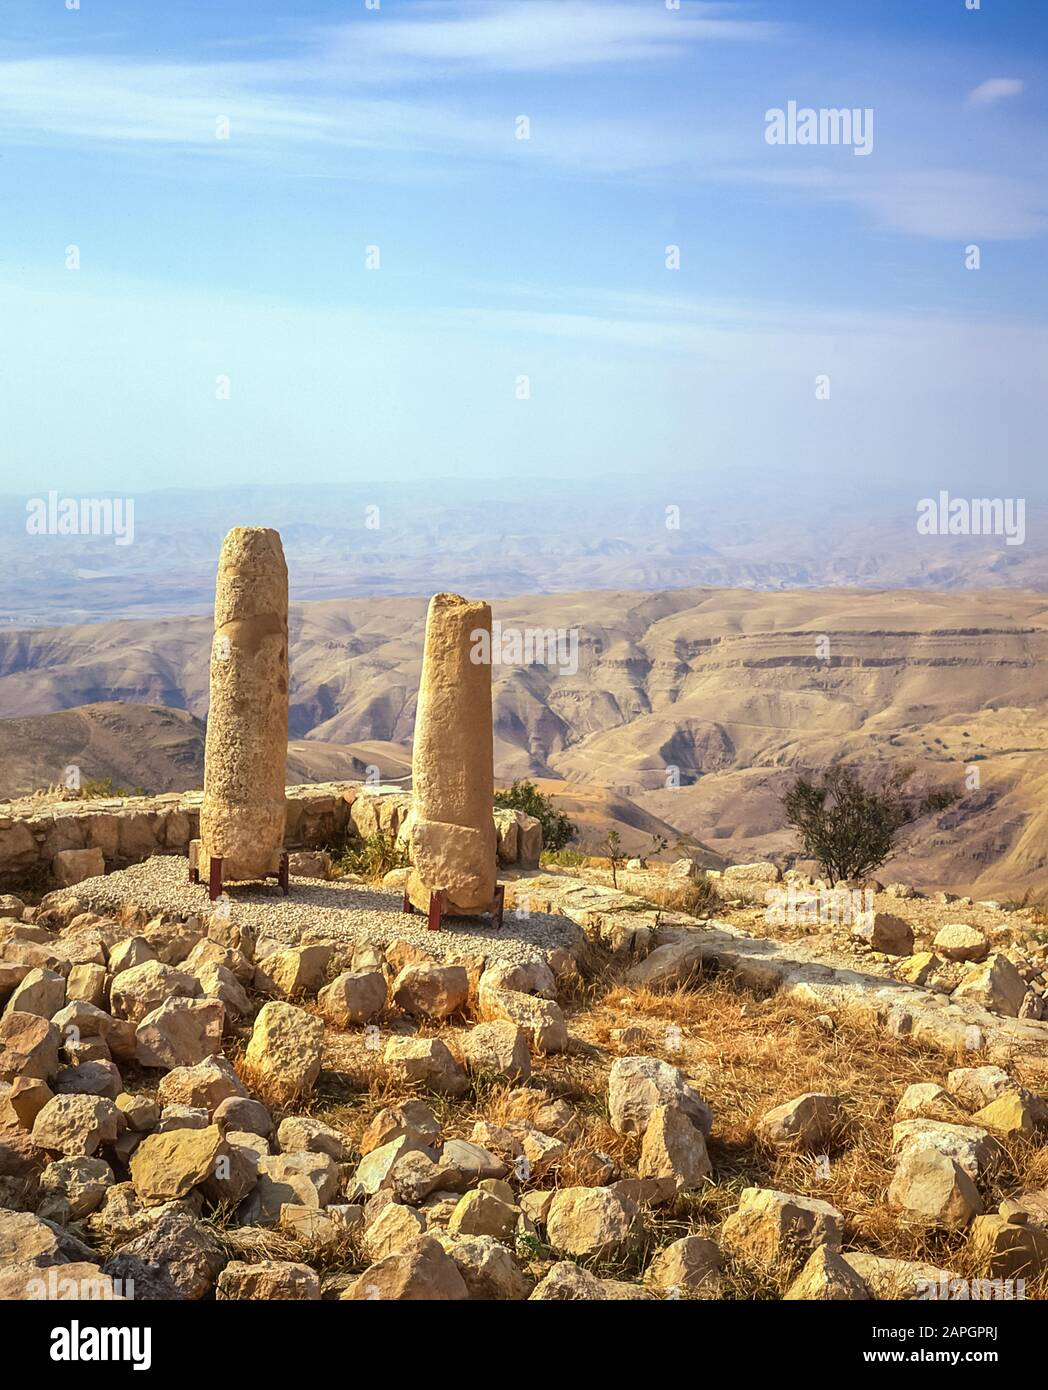 Jordan. Stone column relics at Mount Nebo overlook of the Promised Land from where  the Prophet Moses planted his staff after leading the tribe of the Children of Israel through the Negev deserts and mountains  for 40 years until he reached Mount Nebo at the present day north Jordan town of Madaba from where he declared having found the Promised Land of the River Jordan. Stock Photo